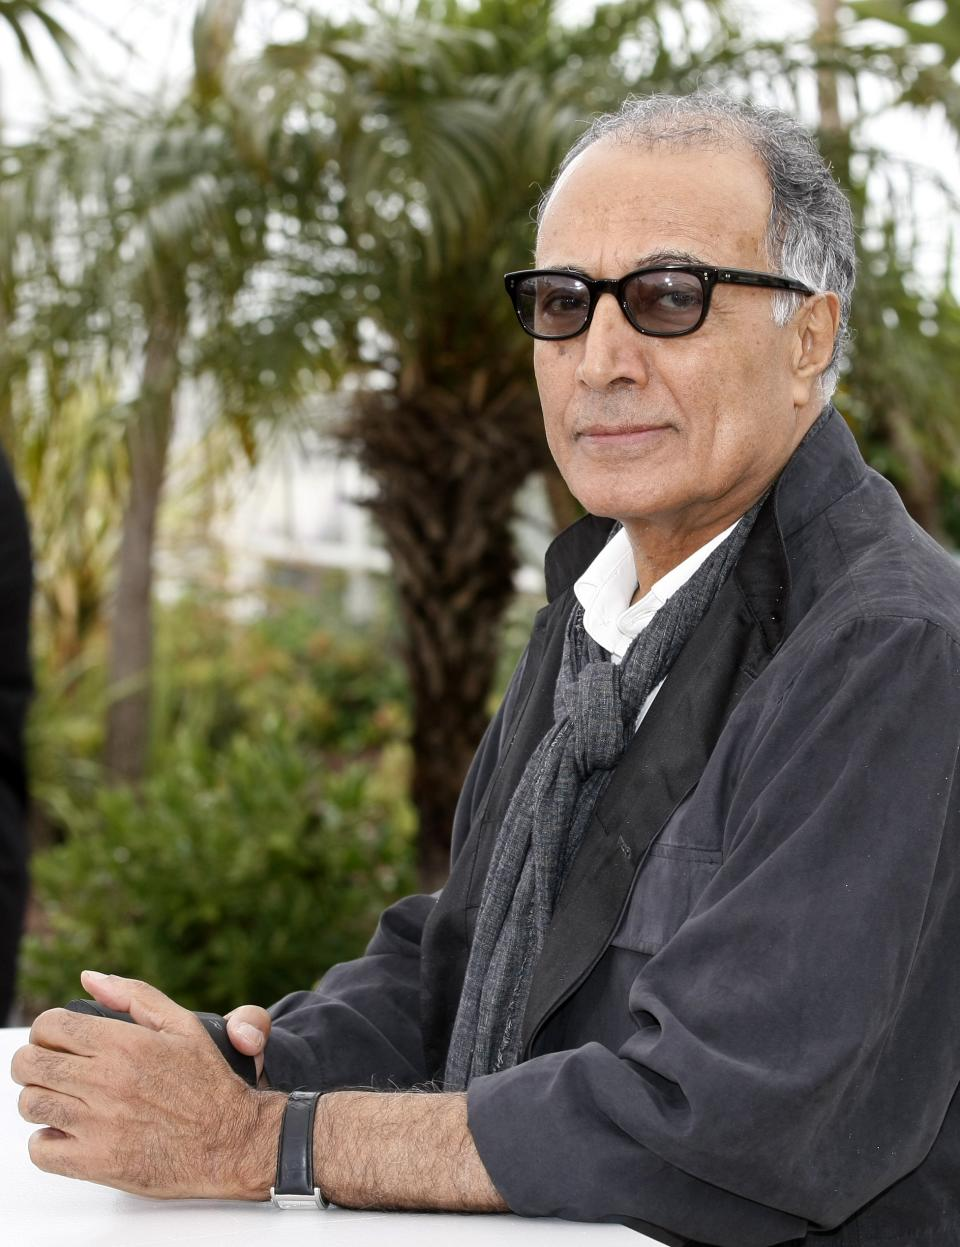 Director Abbas Kiarostami poses during a photo call for Like Somone in Love at the 65th international film festival, in Cannes, southern France, Monday, May 21, 2012. (AP Photo/Lionel Cironneau)